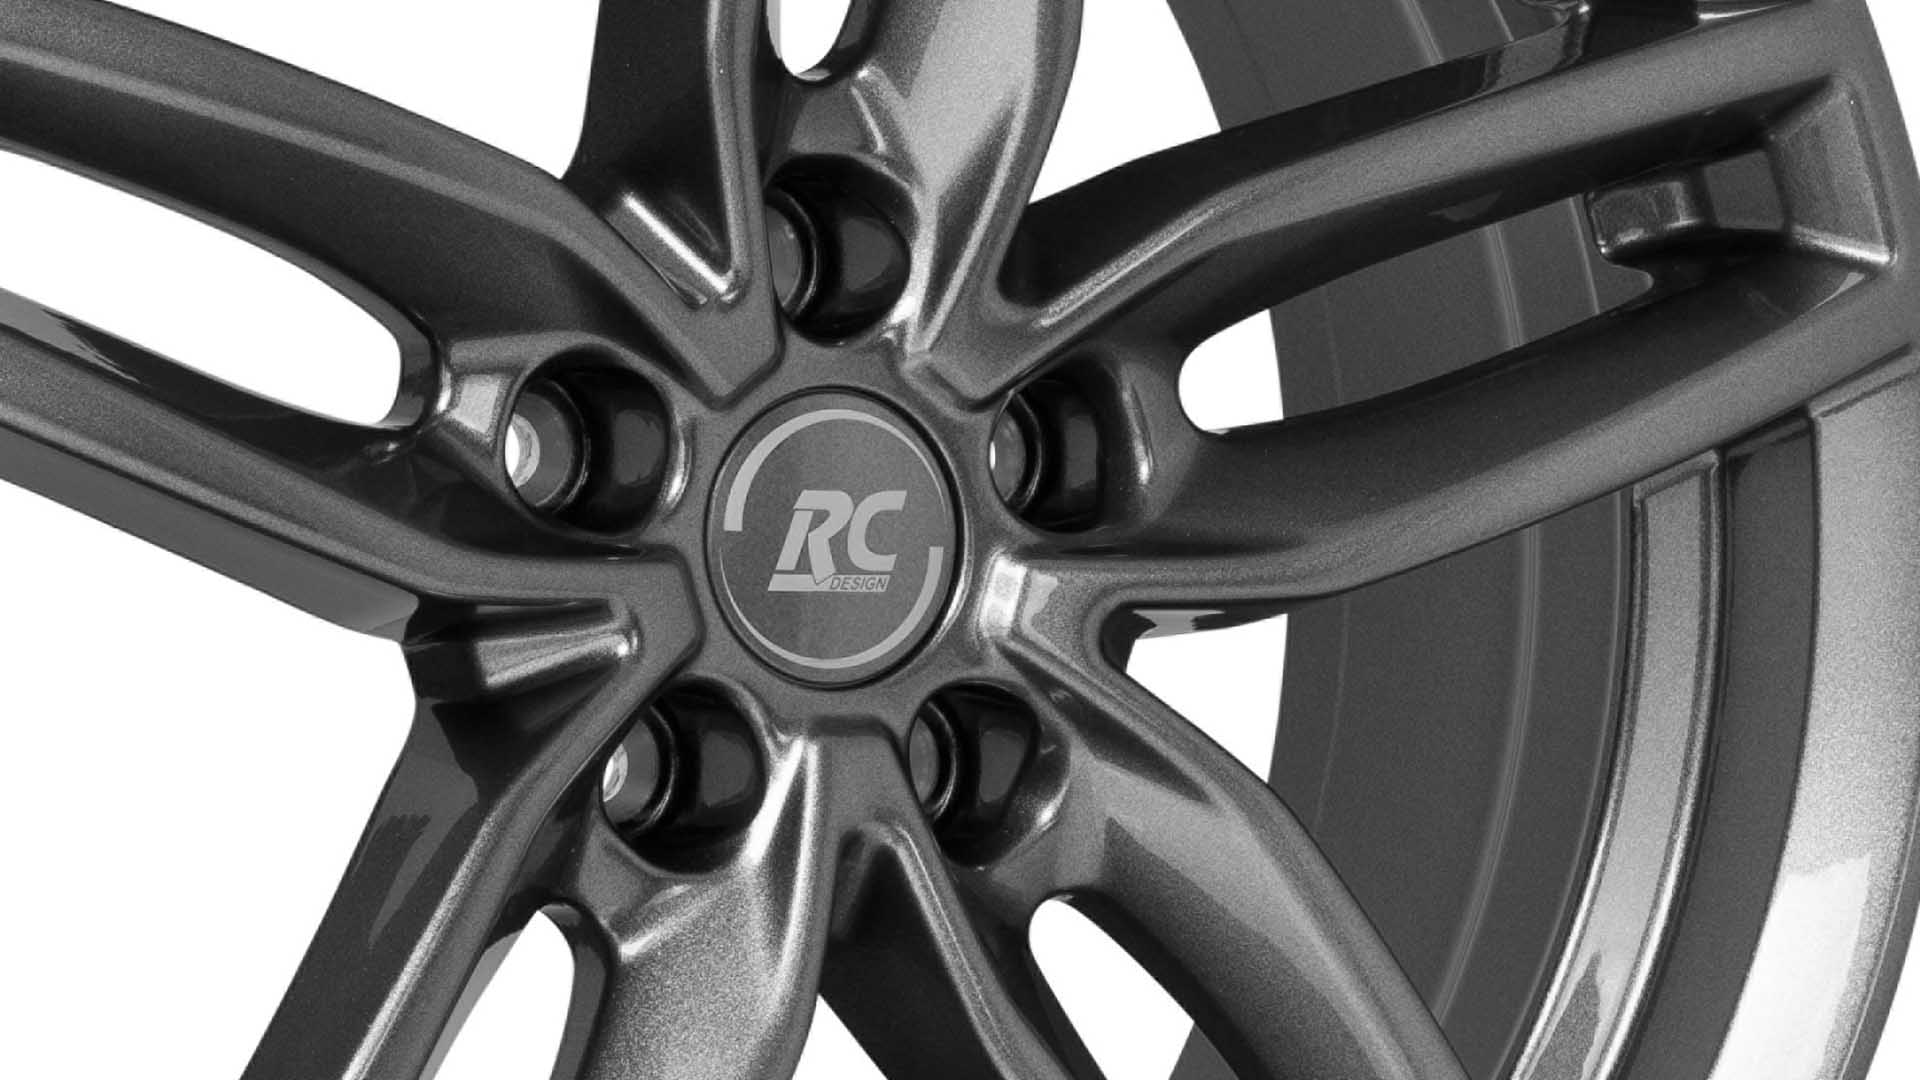 Rc Design Rc29 Creative Double Spoke Wheel In 17 To 20 Inches Oem Audi Wheels Database Felgendetail 4